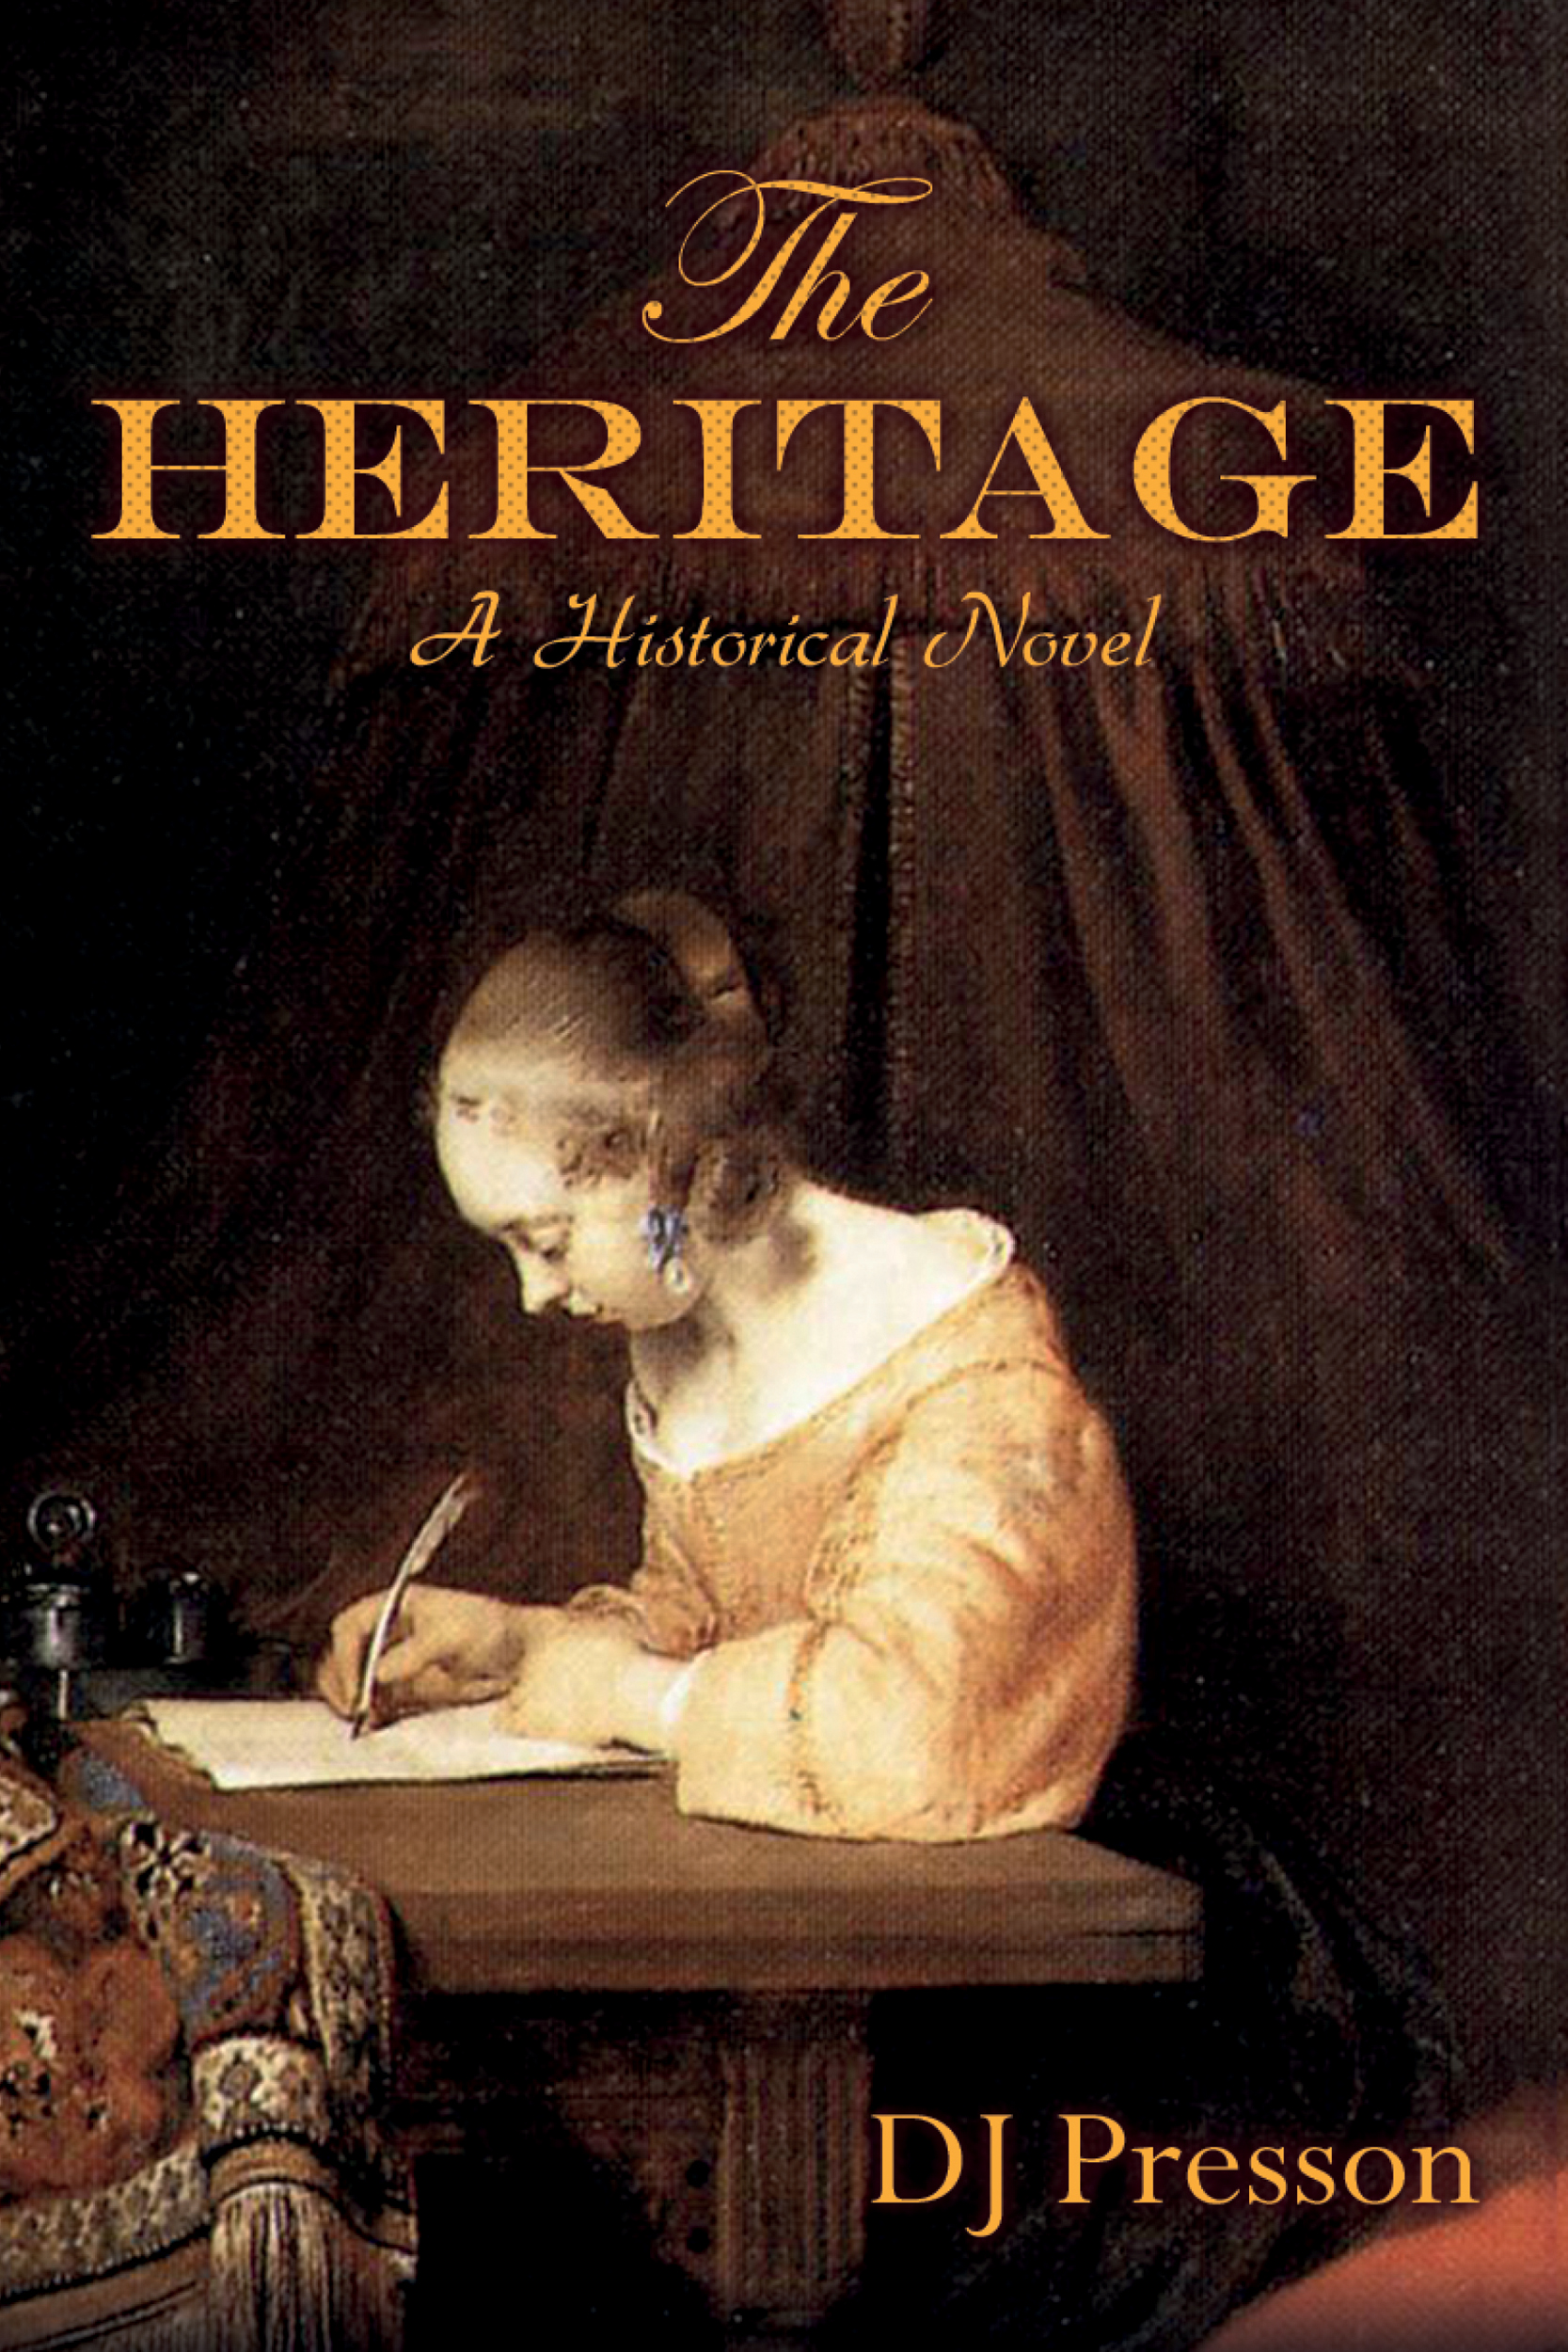 The Heritage: A Historical Novel